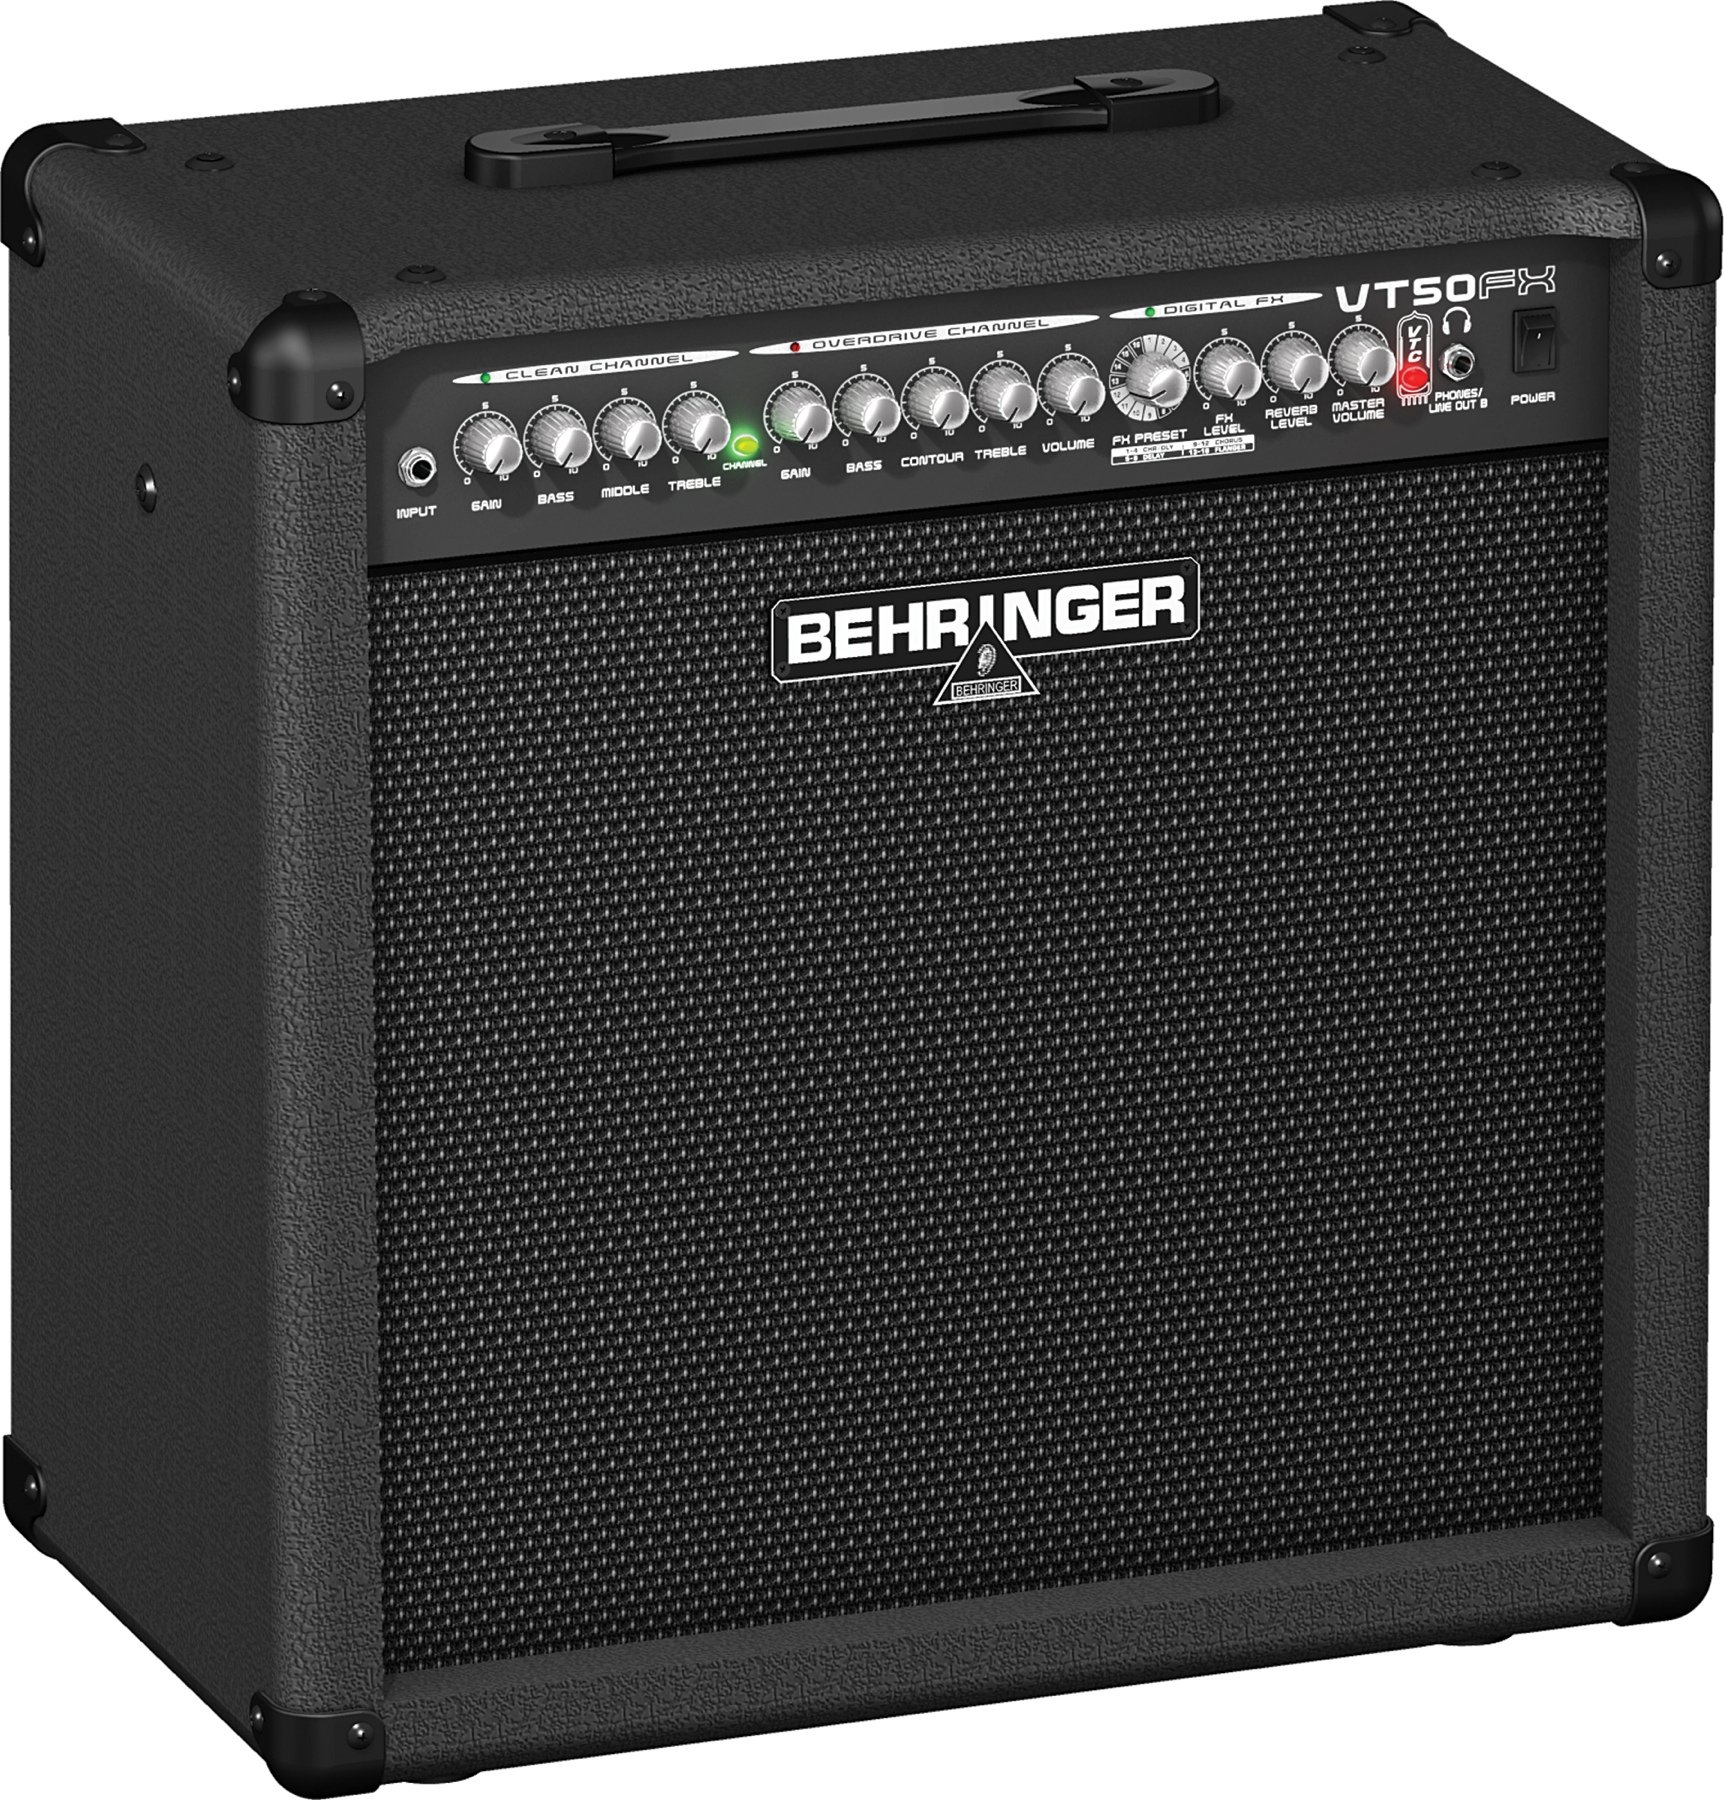 Behringer Vt50fx 1x12 50 Watt Combo With Fx Sweetwater Watts Audio Power Amplifier Image 1